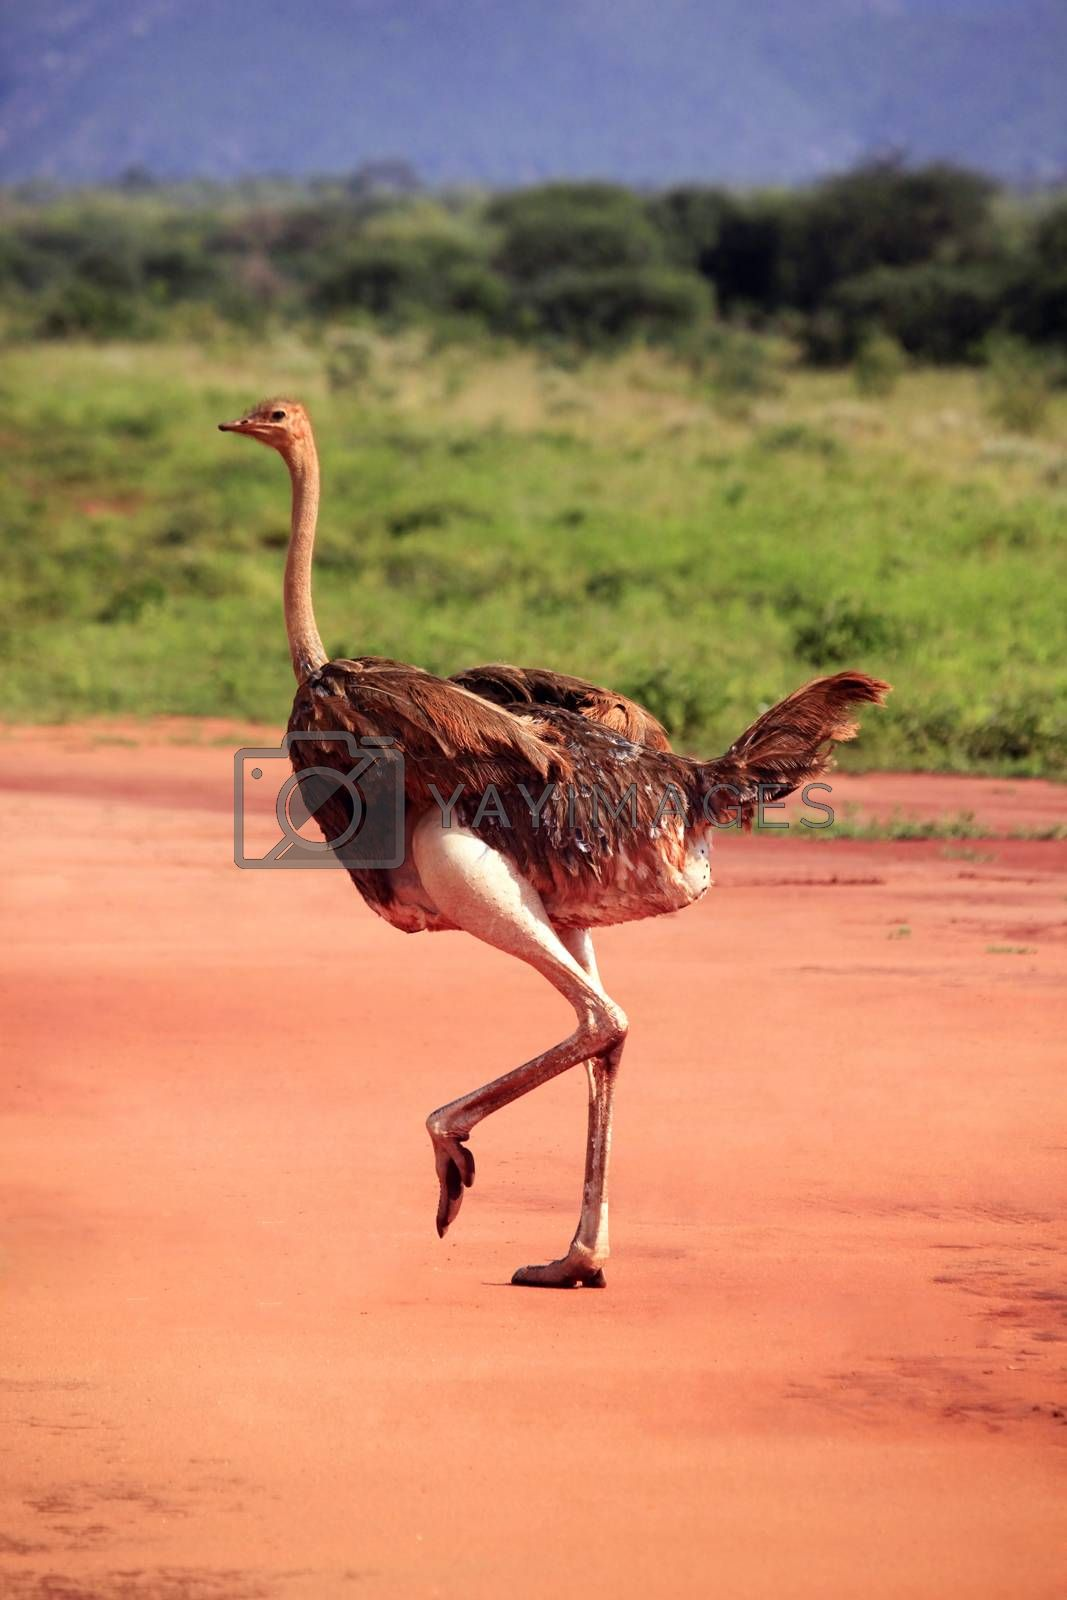 Ostrich in Tsavo East National Park by friday